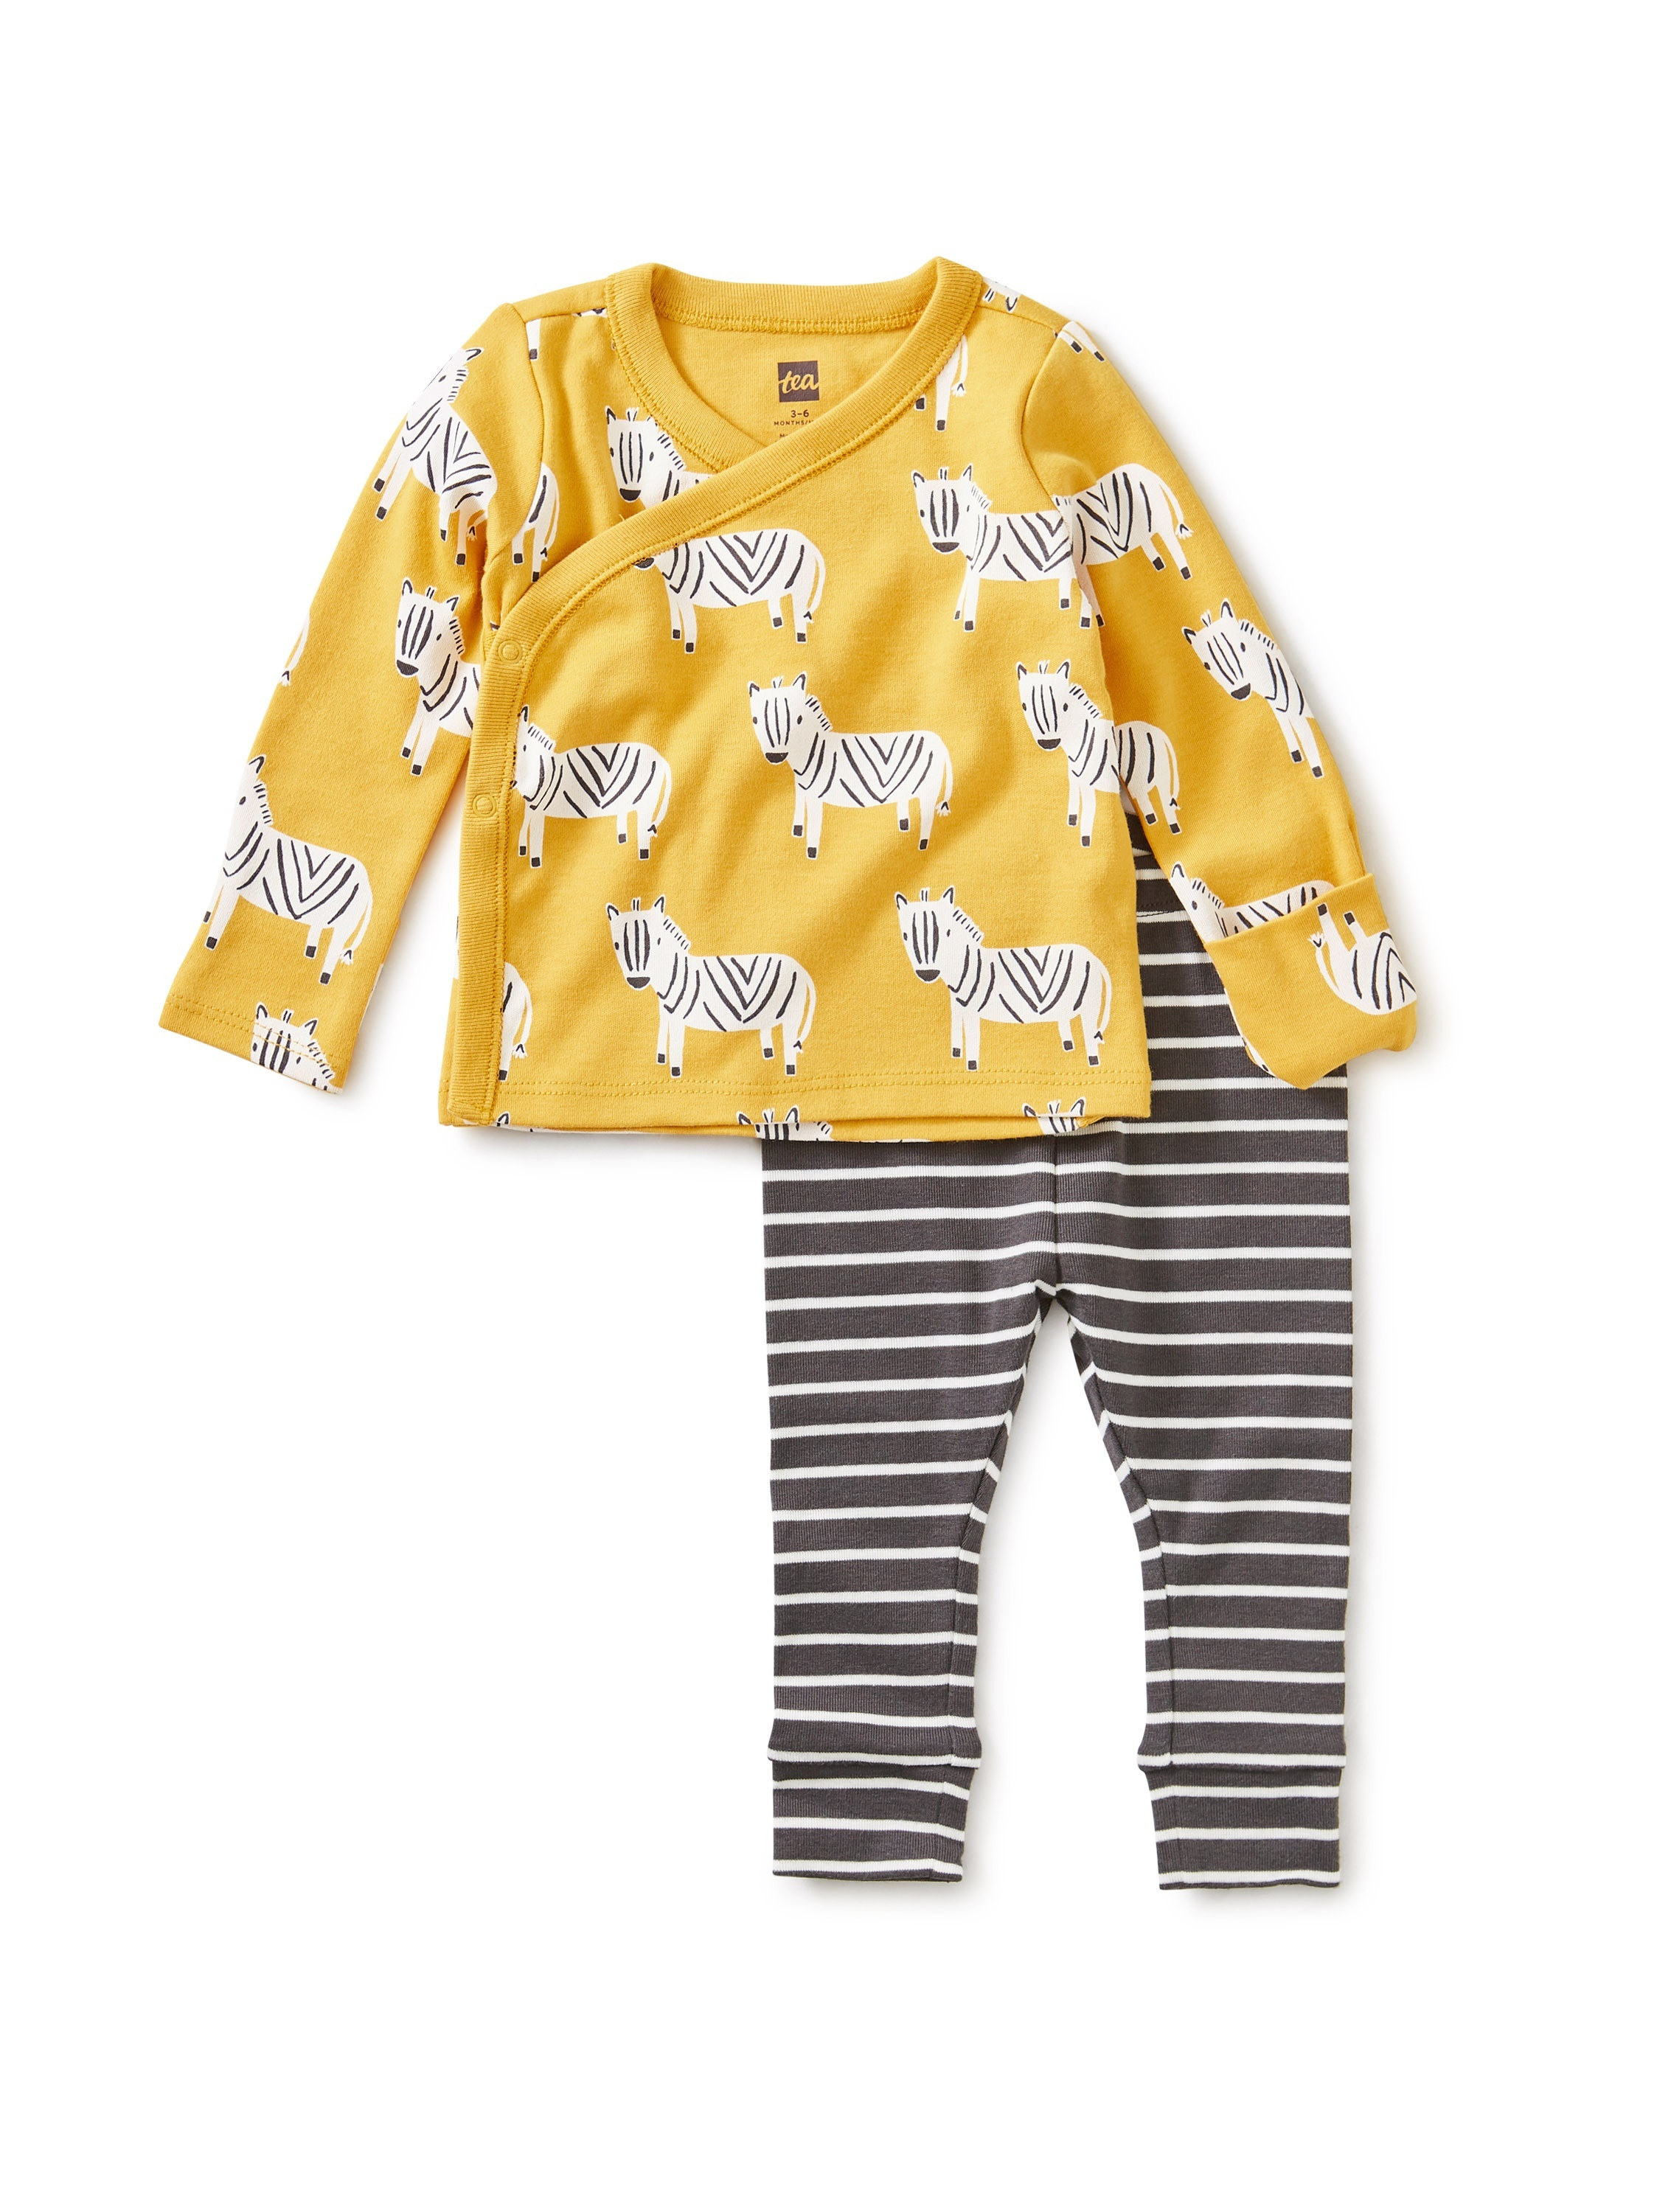 Wrap Top Baby Outfit-Sweet Zebra